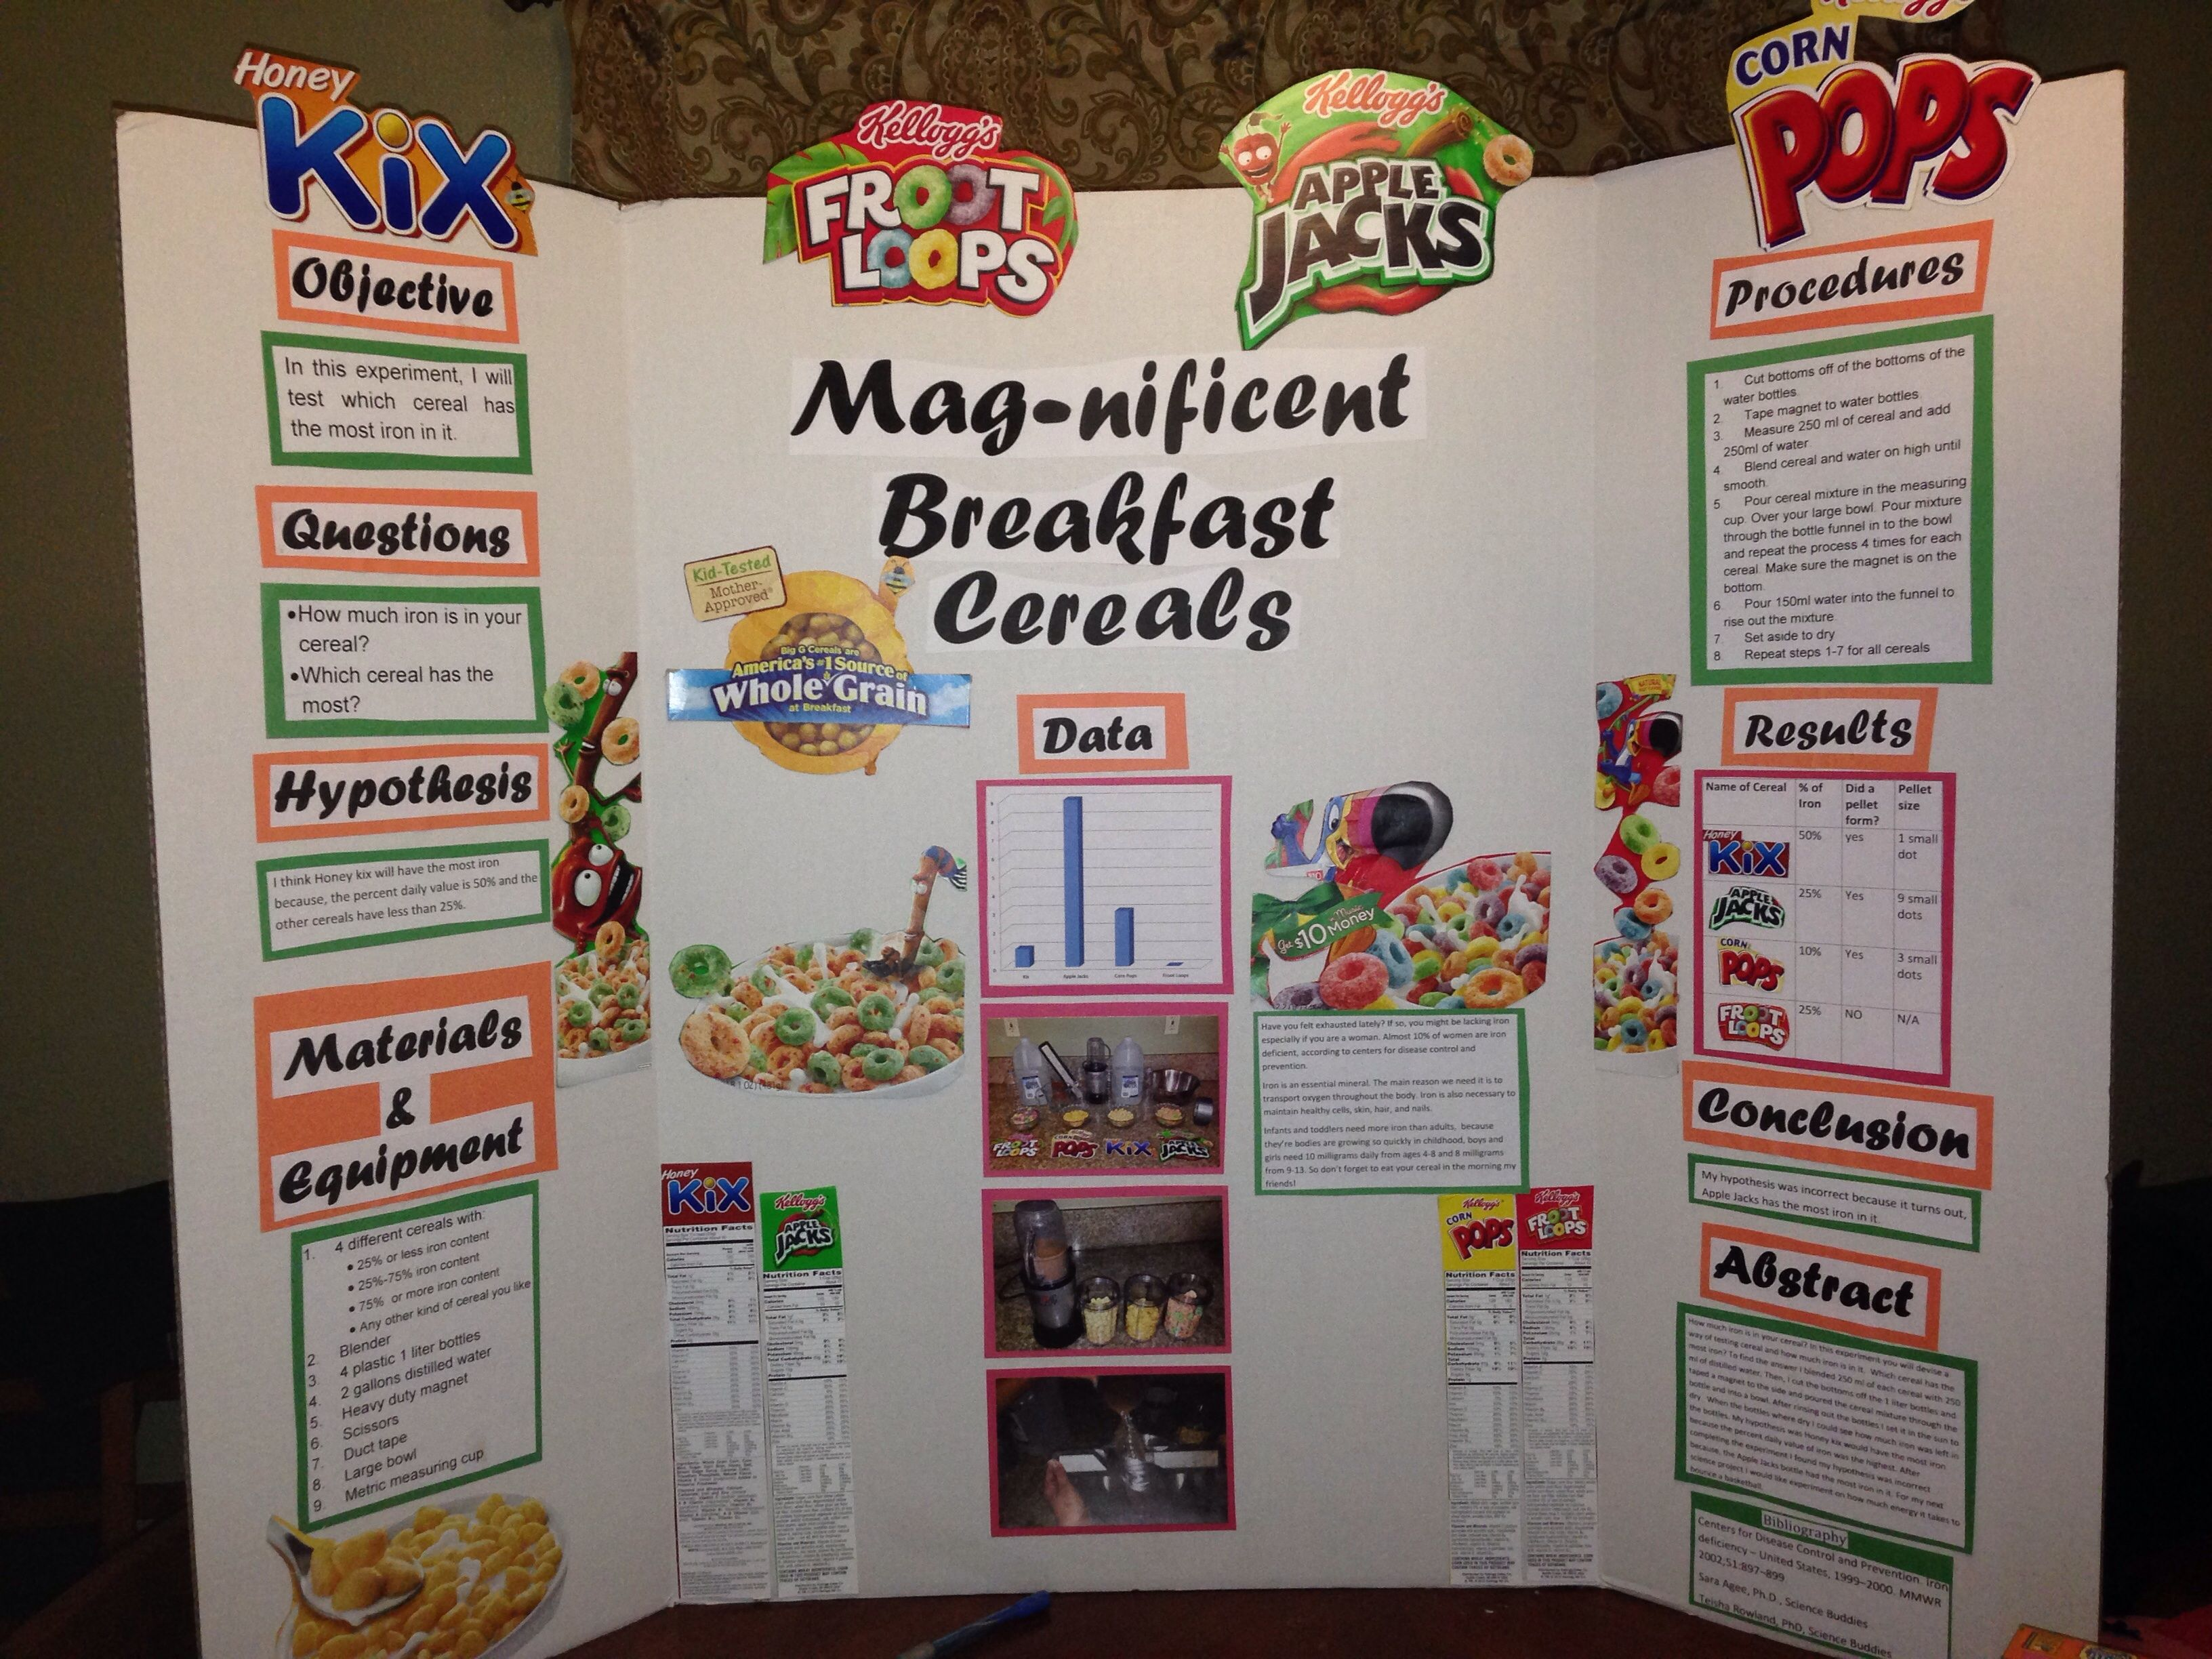 Mag-nificent Breakfast Cereal Science Projects